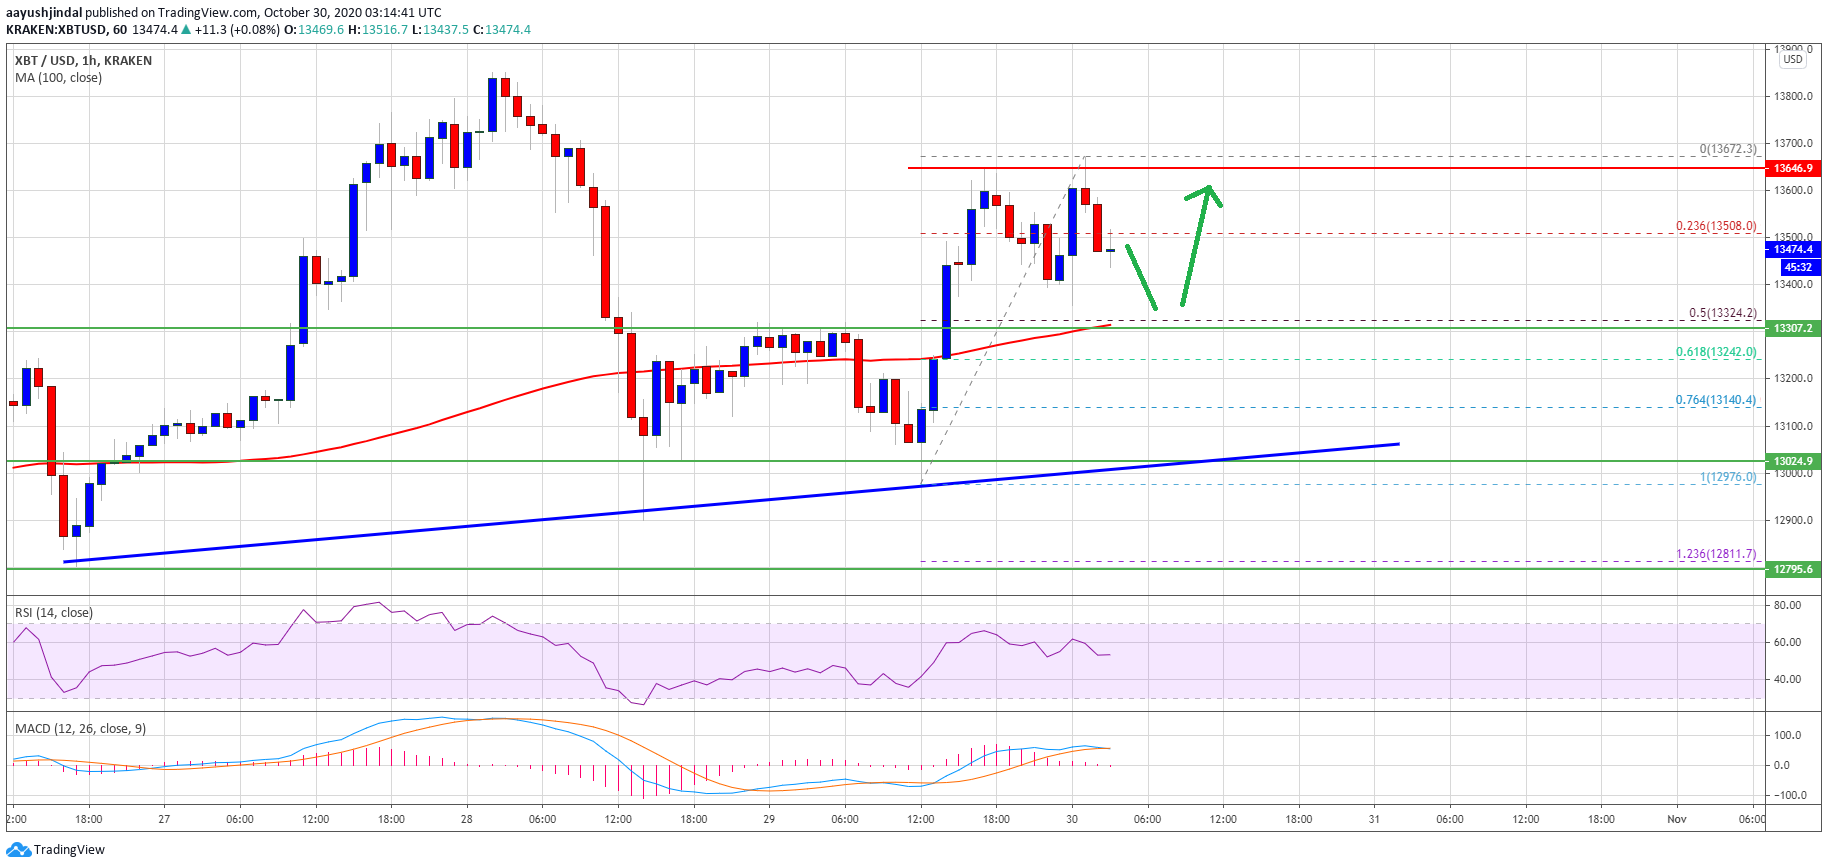 TA: Bitcoin Regains Strength, But Break Above $13,700 Holds The Key